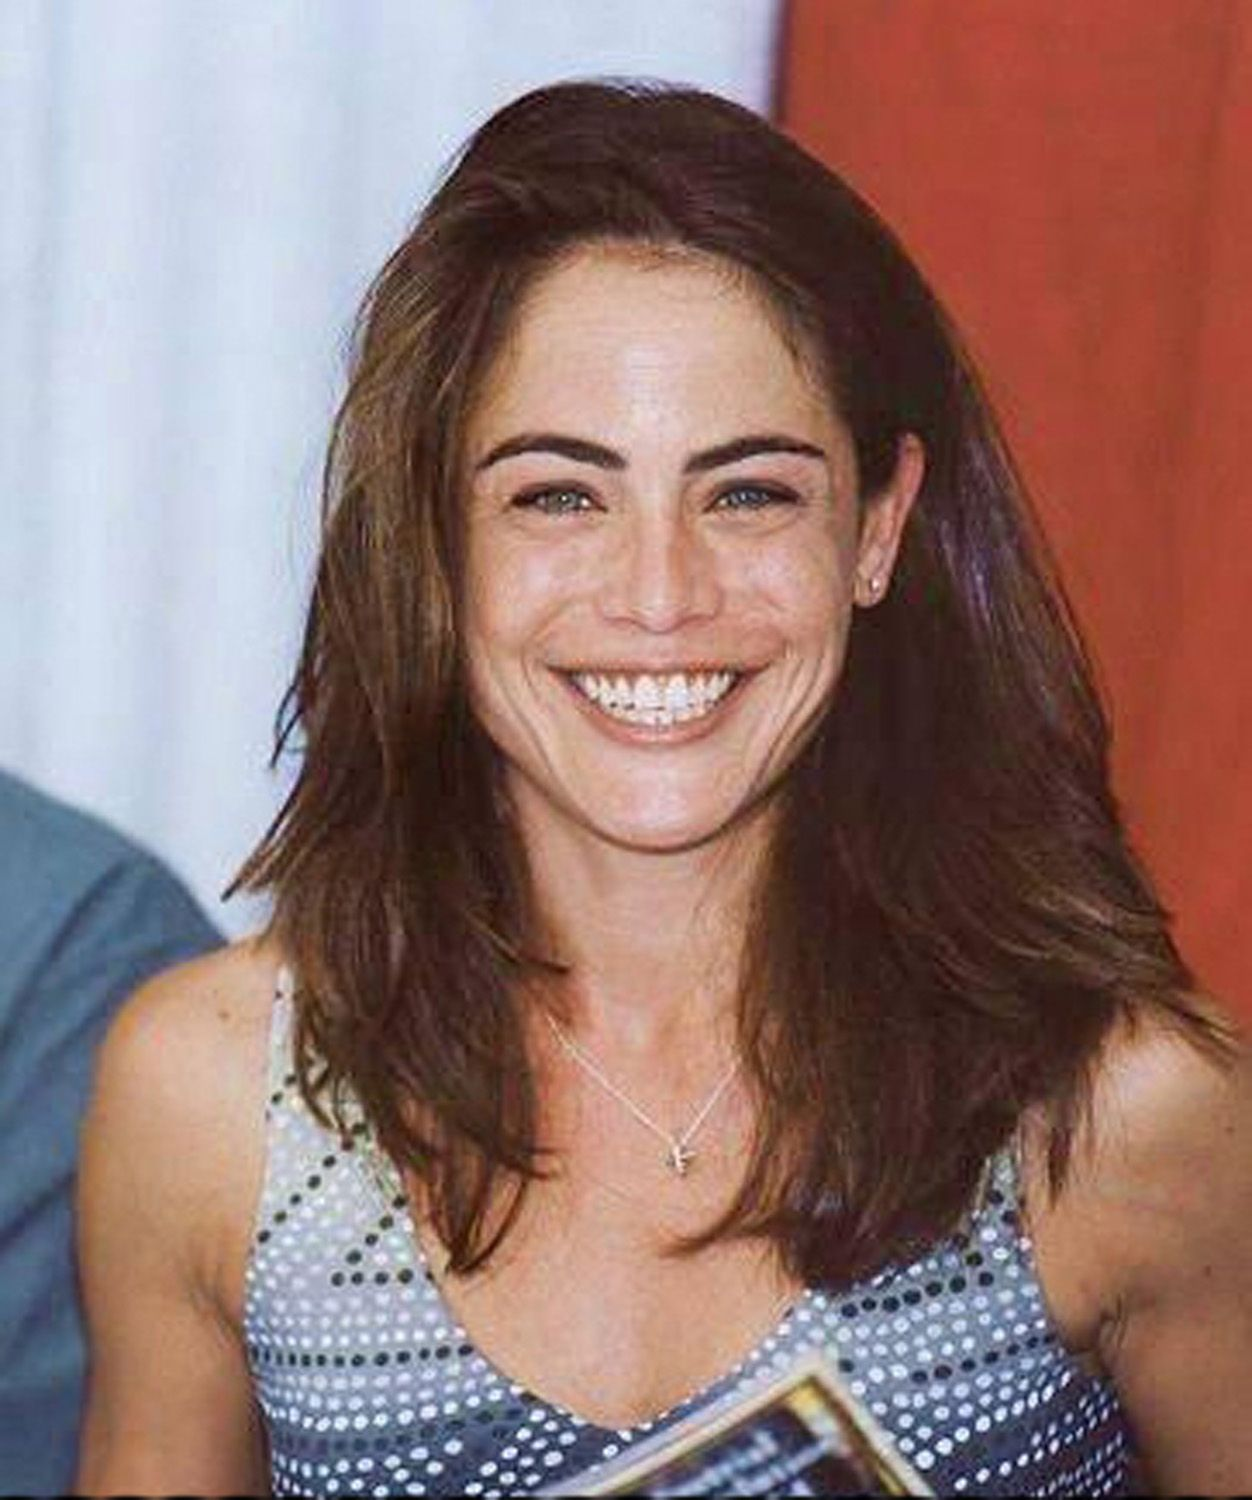 yancy butler twitteryancy butler instagram, yancy butler photos, yancy butler wiki, yancy butler, yancy butler net worth, yancy butler 2015, yancy butler twitter, yancy butler dailymotion, yancy butler hard target, yancy butler imdb, yancy butler movies